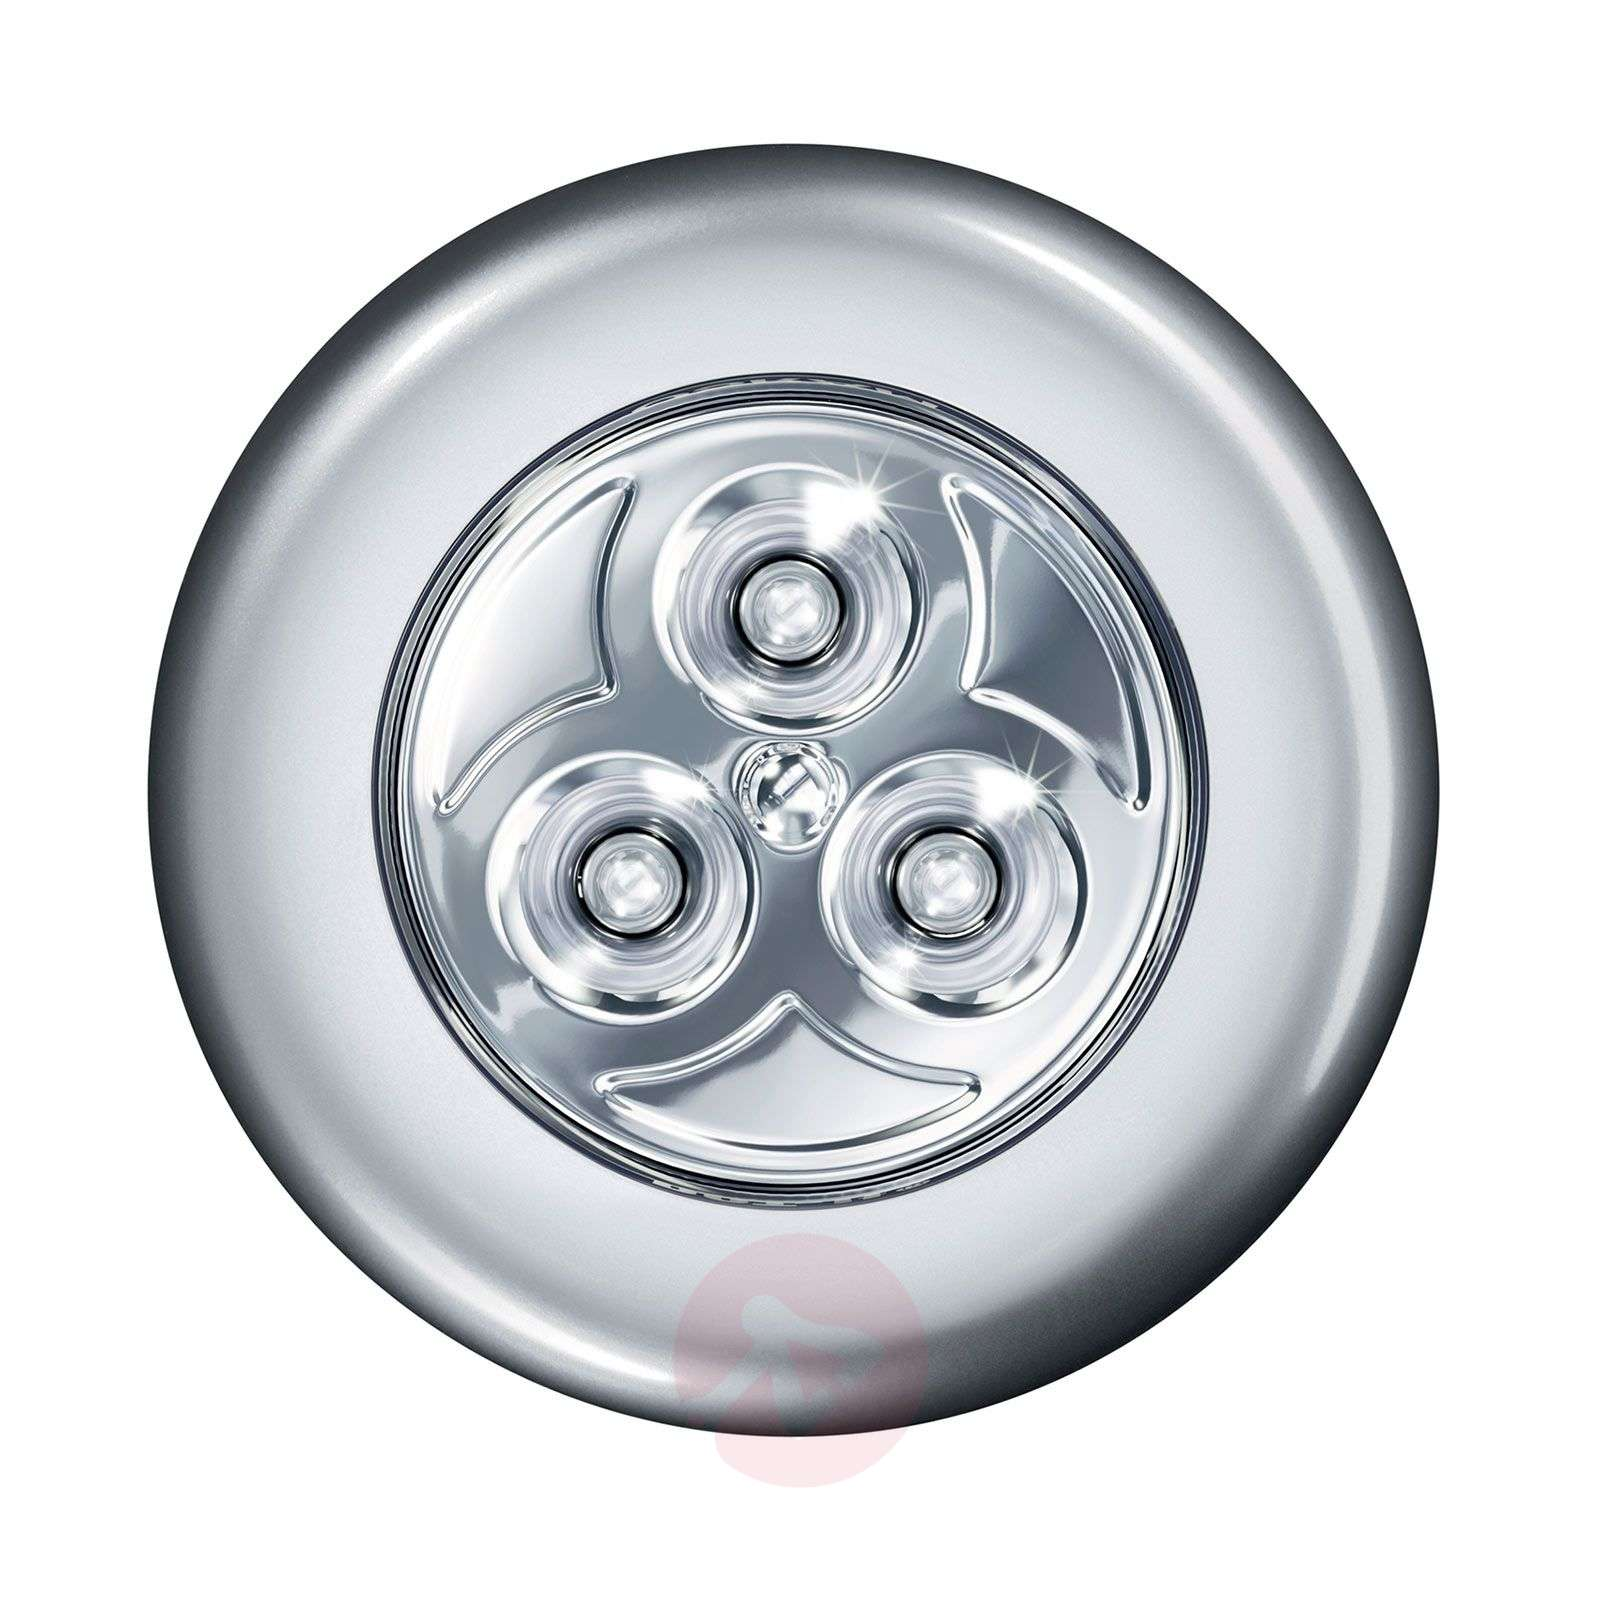 LEDVANCE DOT-it classic oprawa LED srebrna-6106005-01